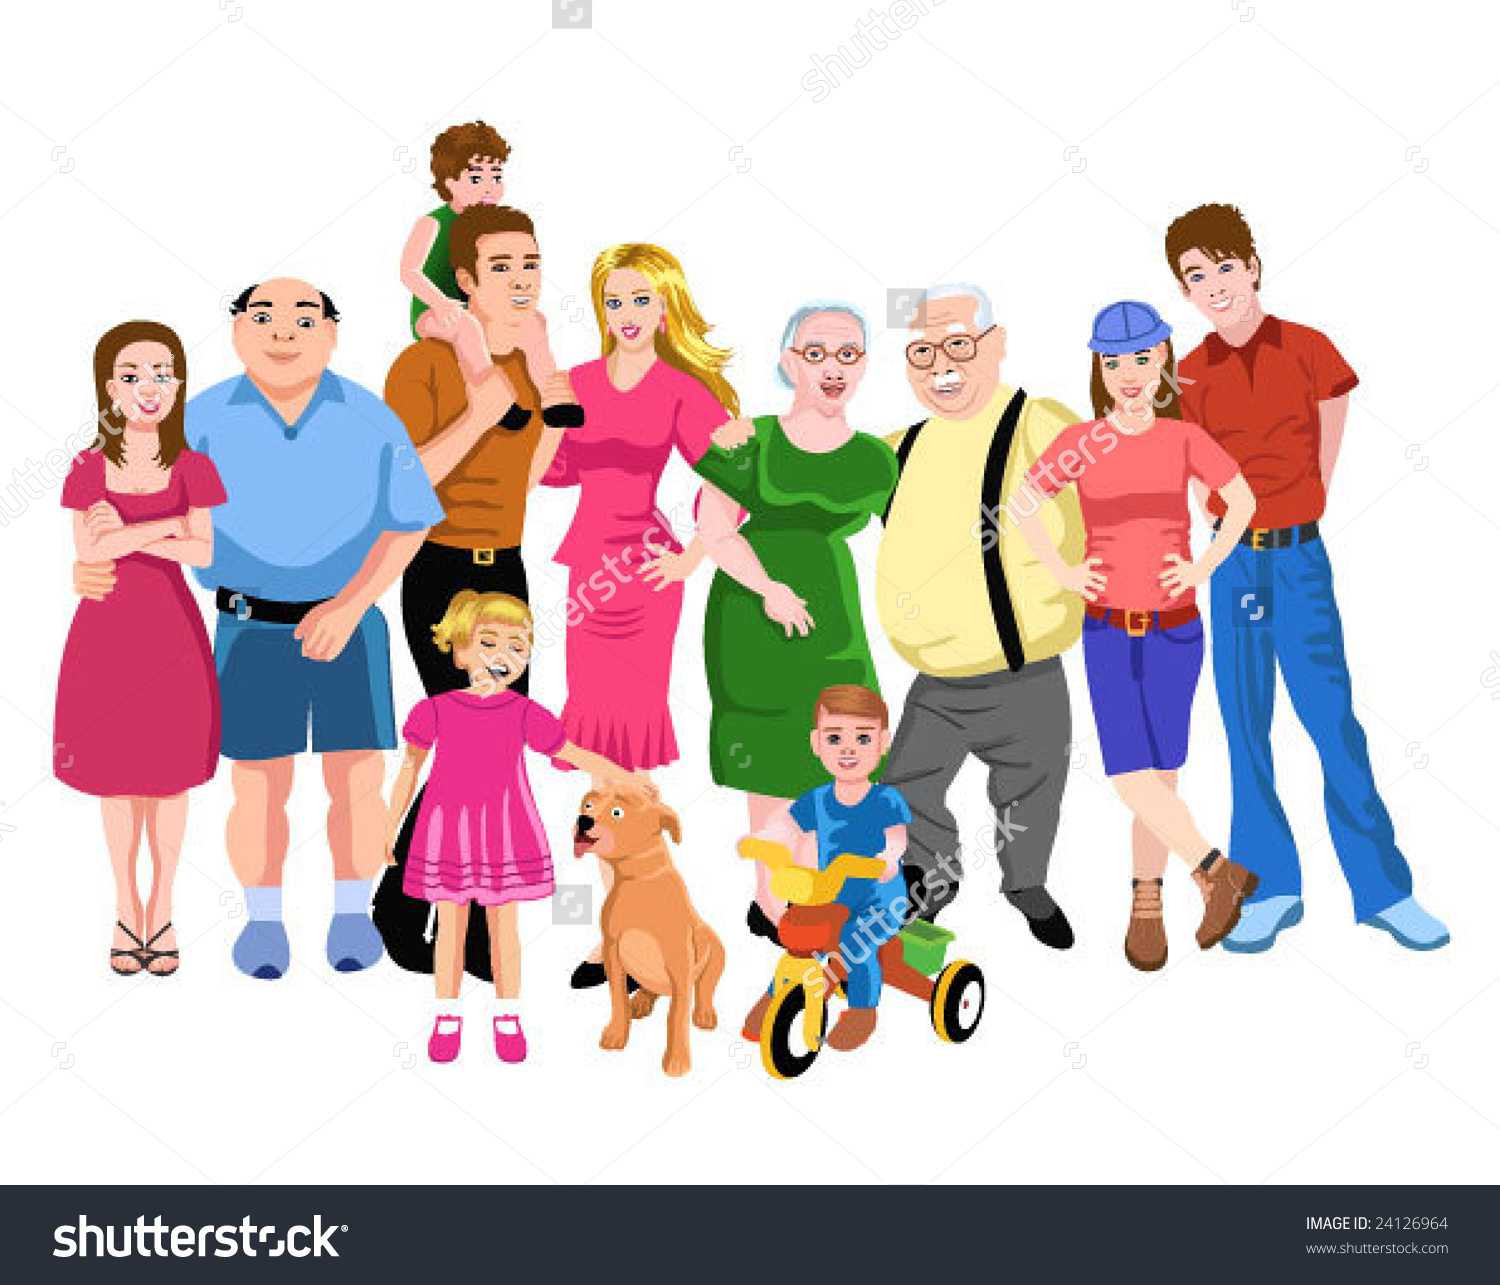 Indian clipart family member Clipart family Big  vectorby